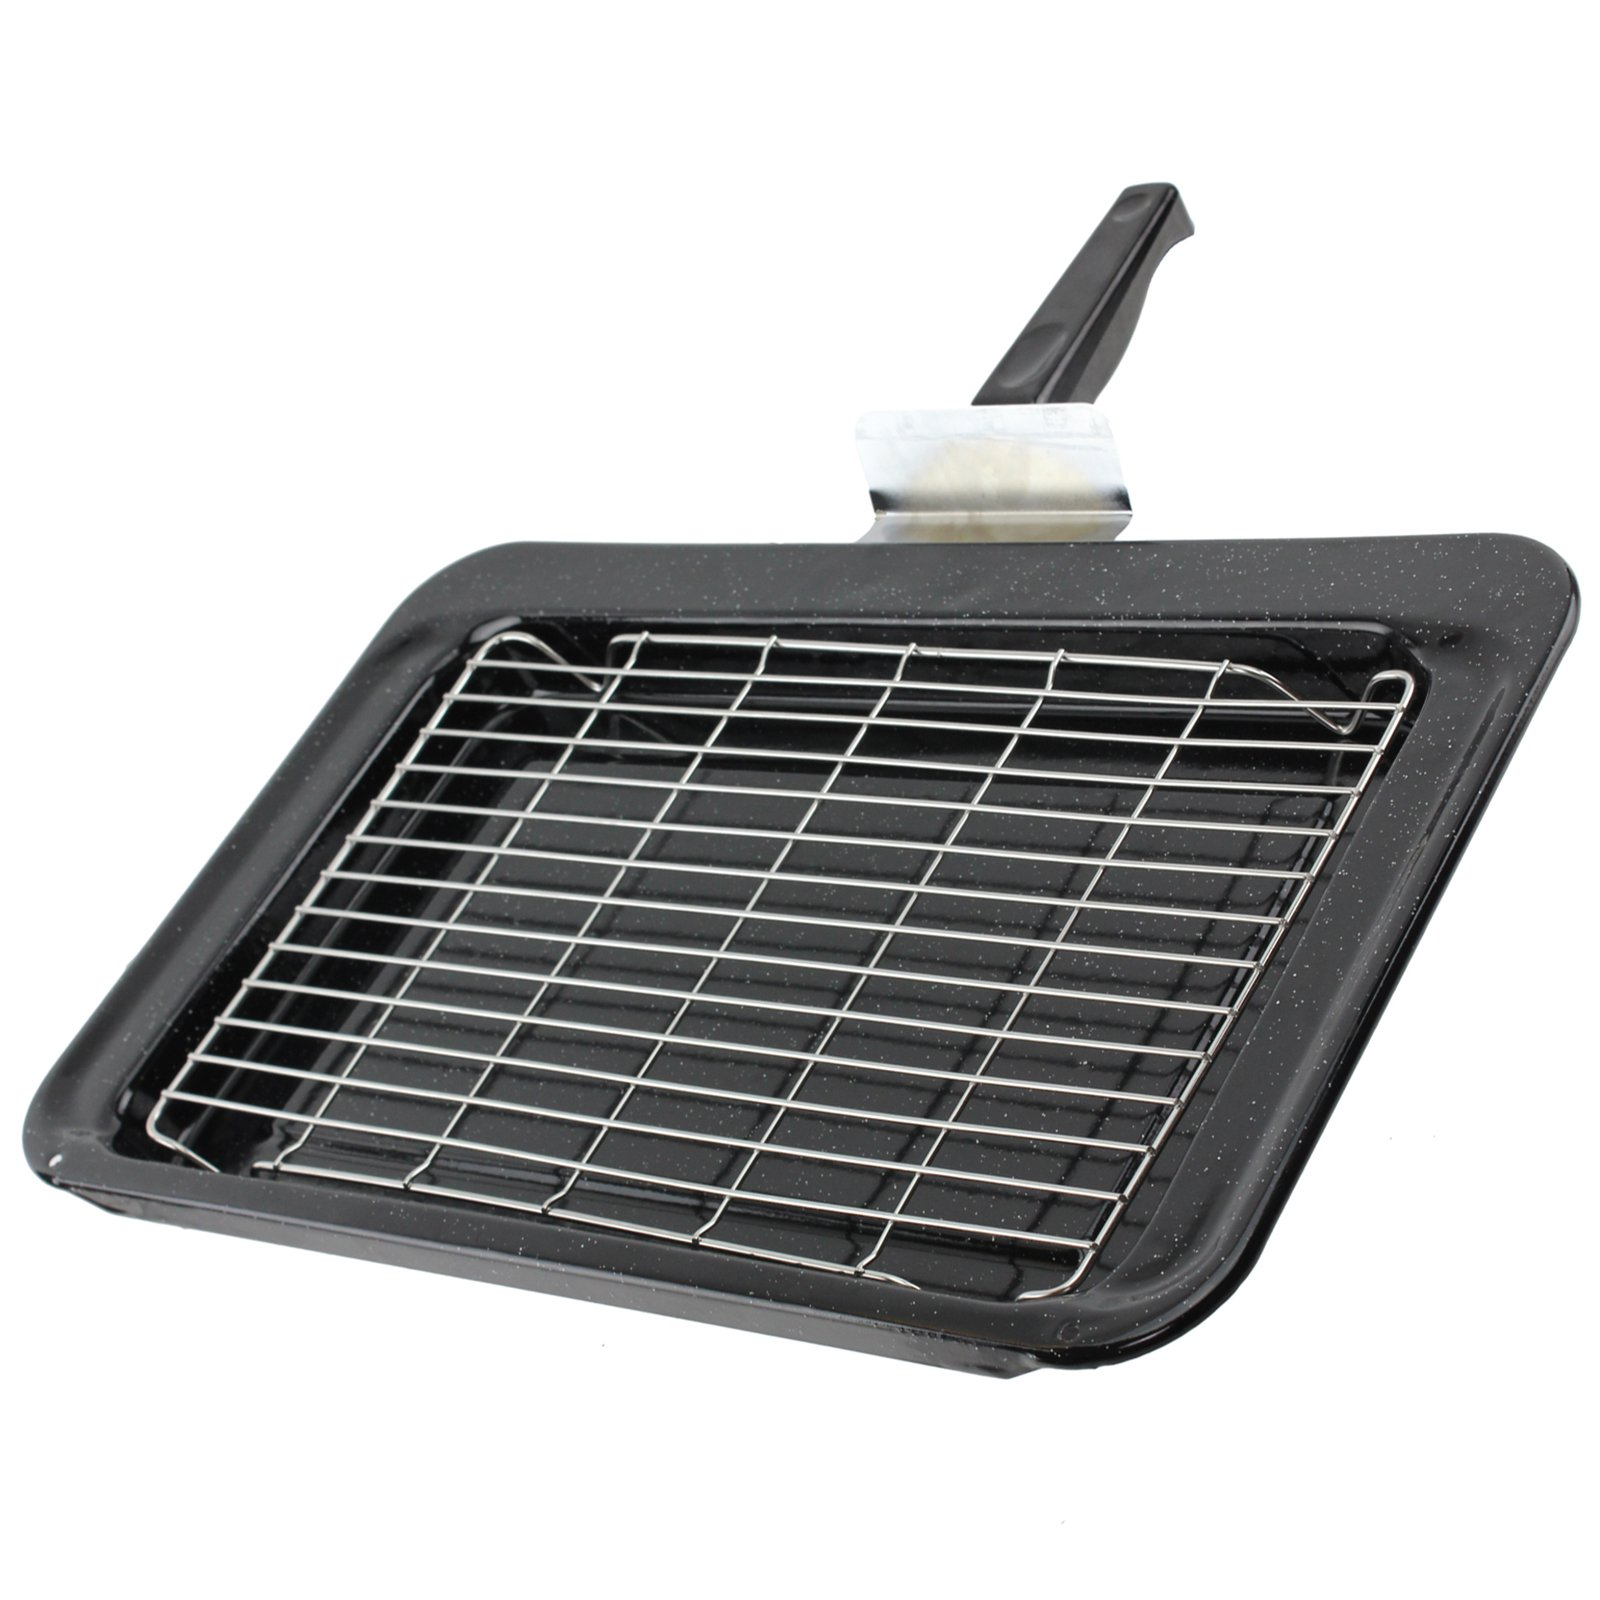 HOTPOINT Oven Cooker Grill Pan With Rack /& Detachable Handle Genuine Part